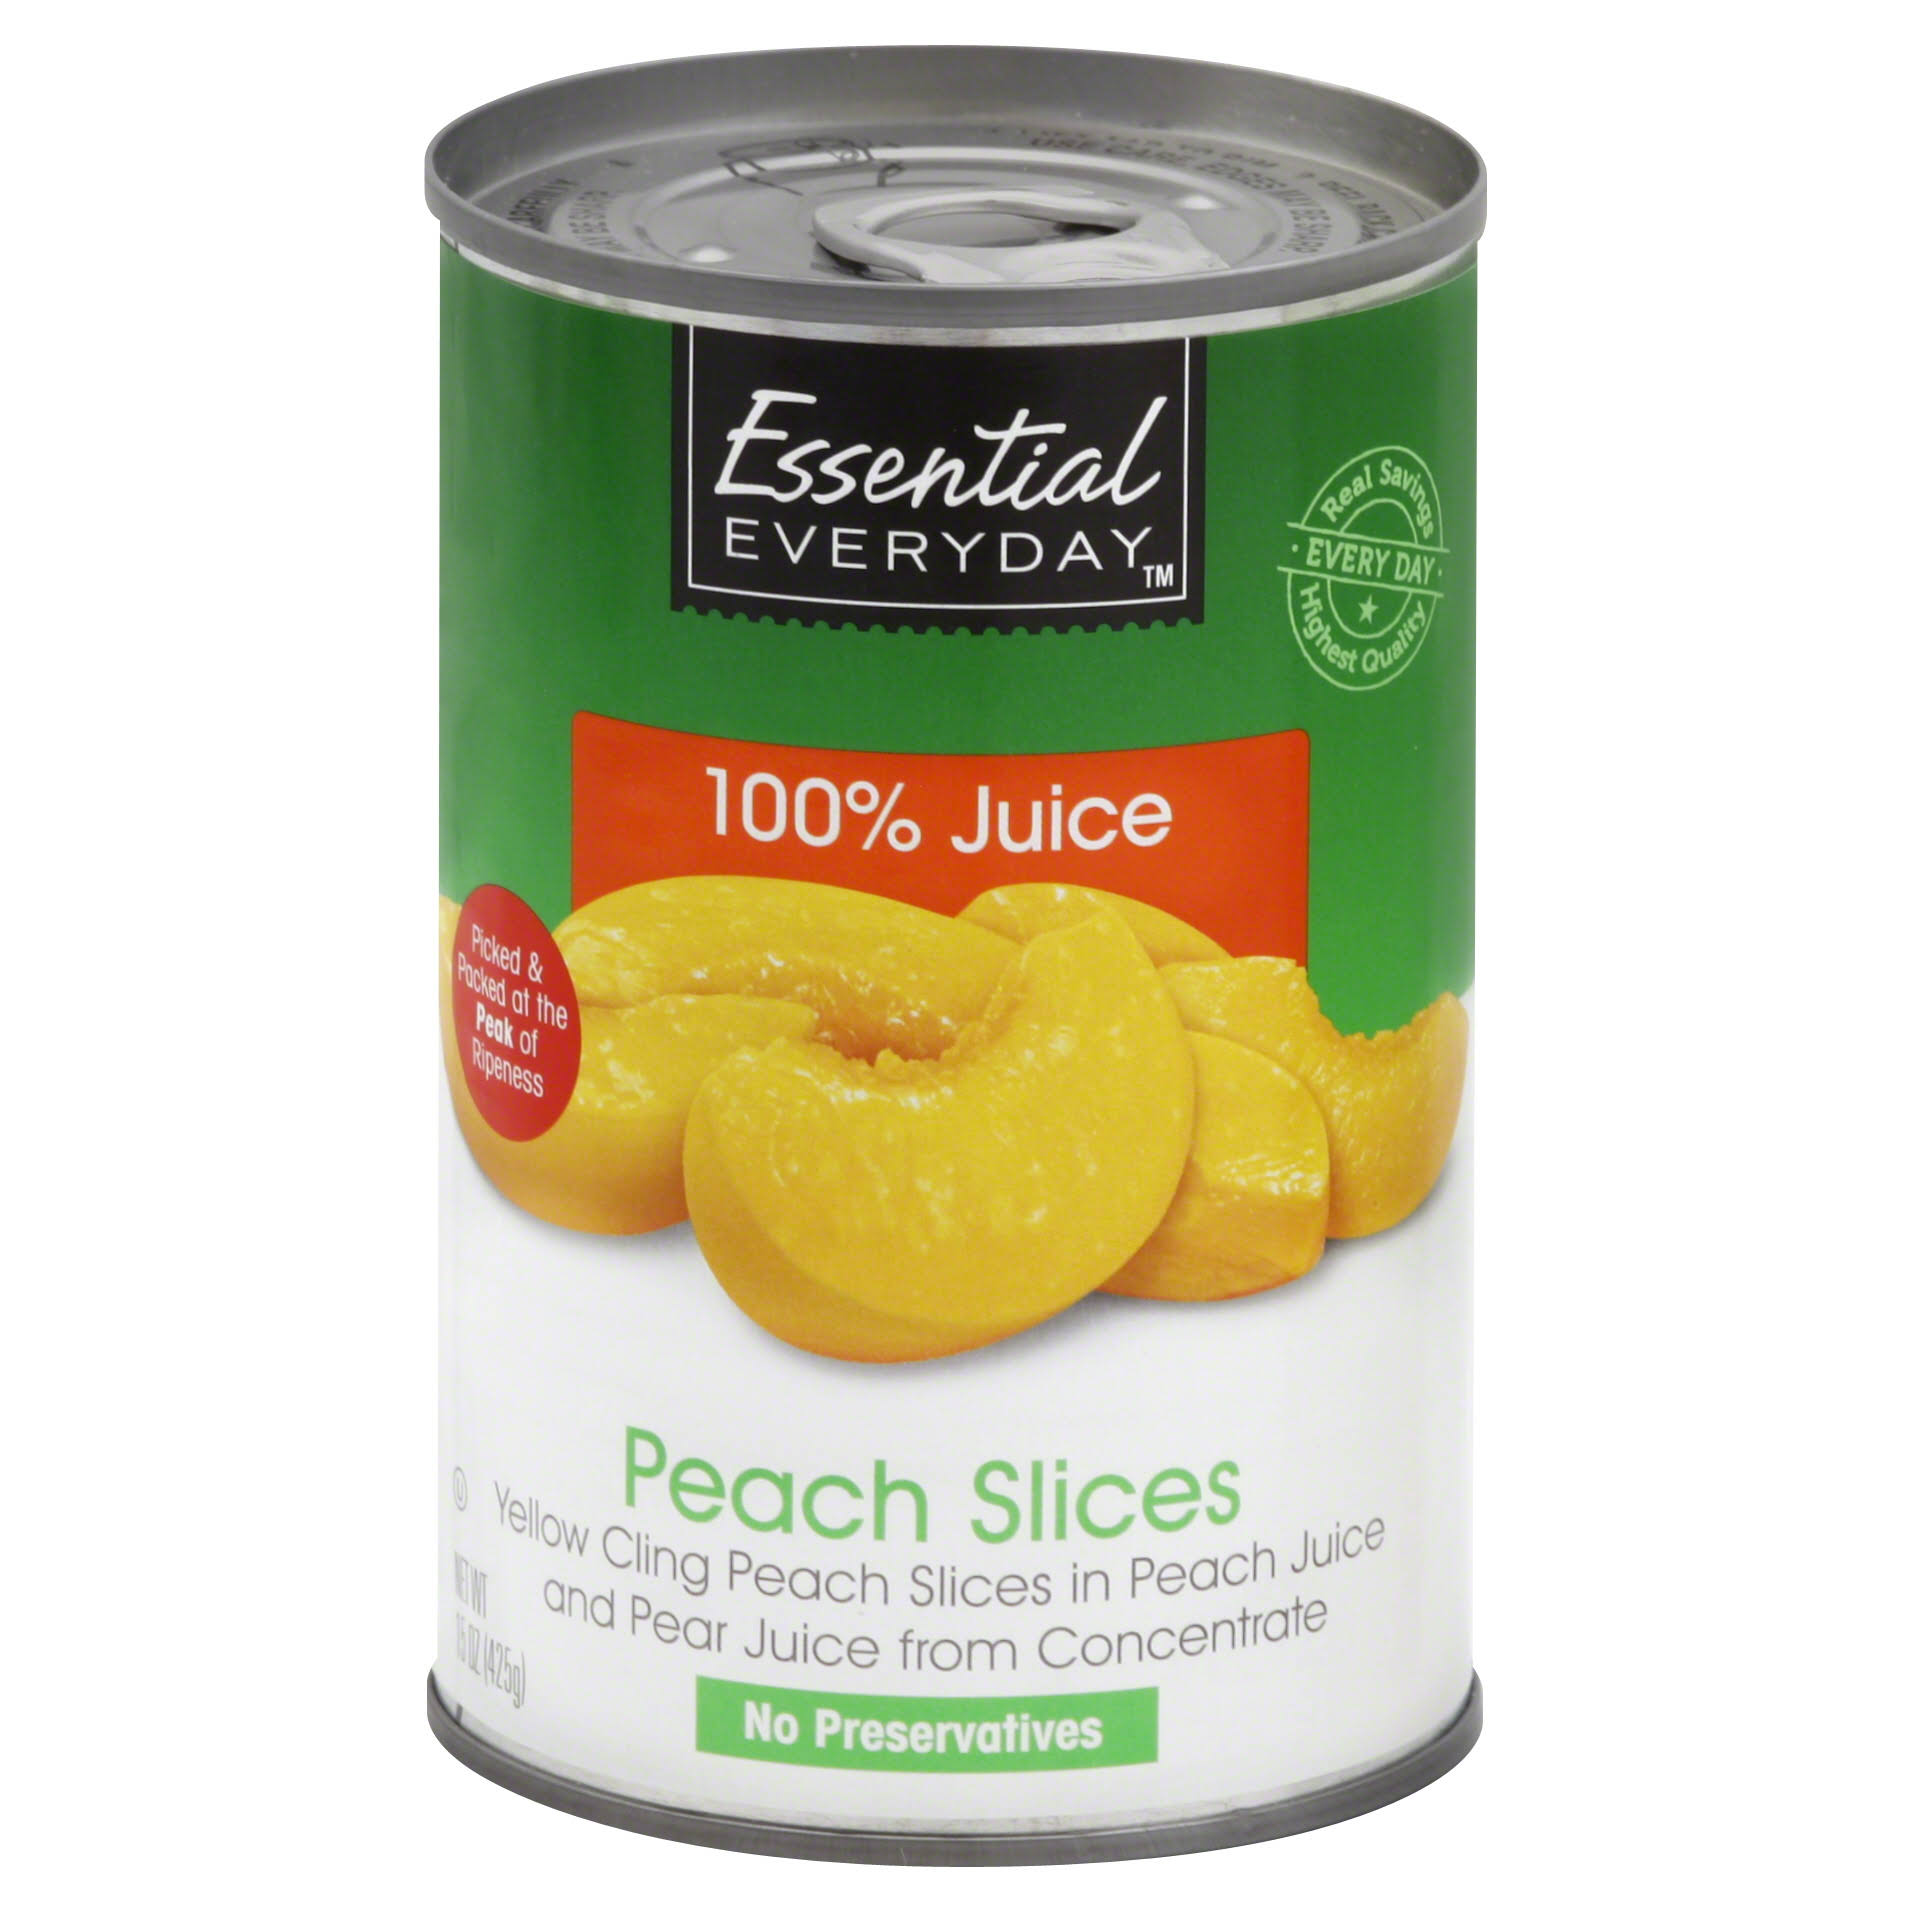 Essential Everyday Peach Slices - 15 oz